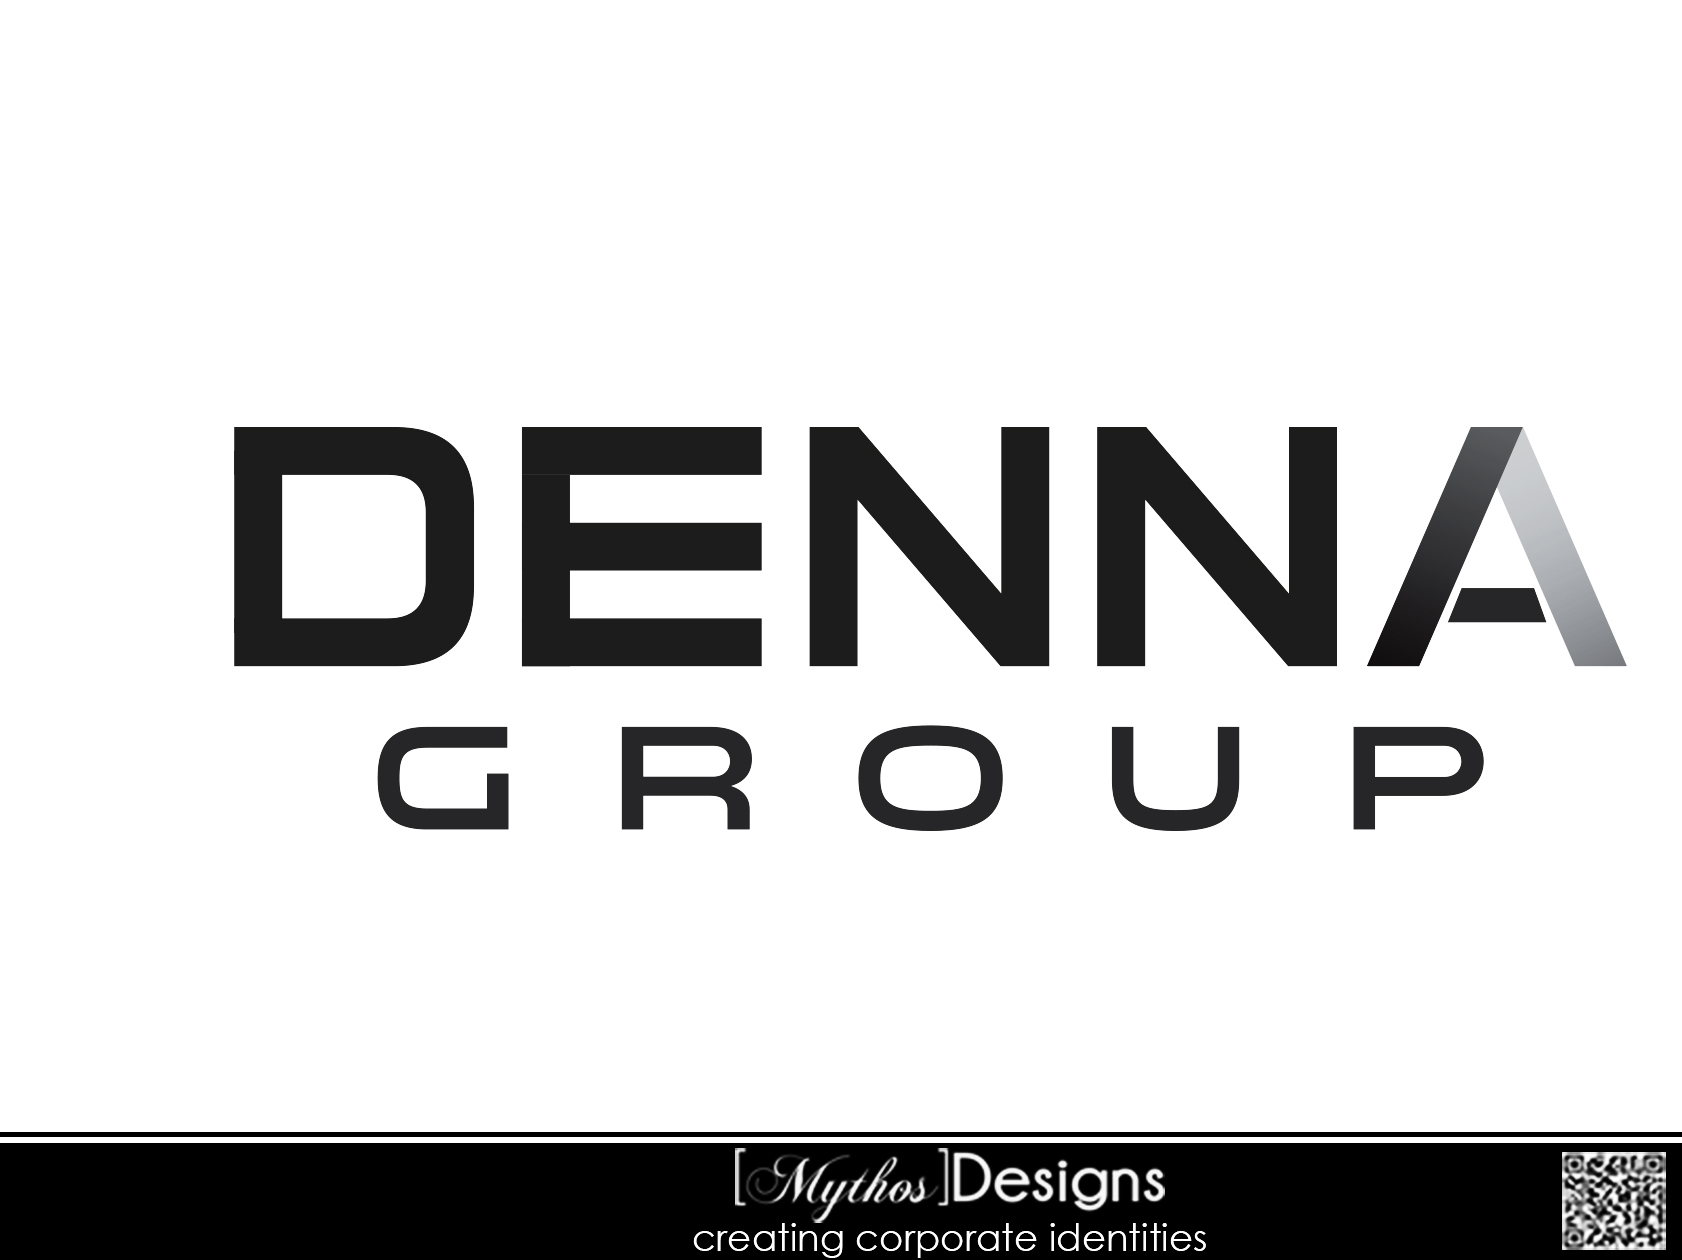 Logo Design by Mythos Designs - Entry No. 157 in the Logo Design Contest Denna Group Logo Design.